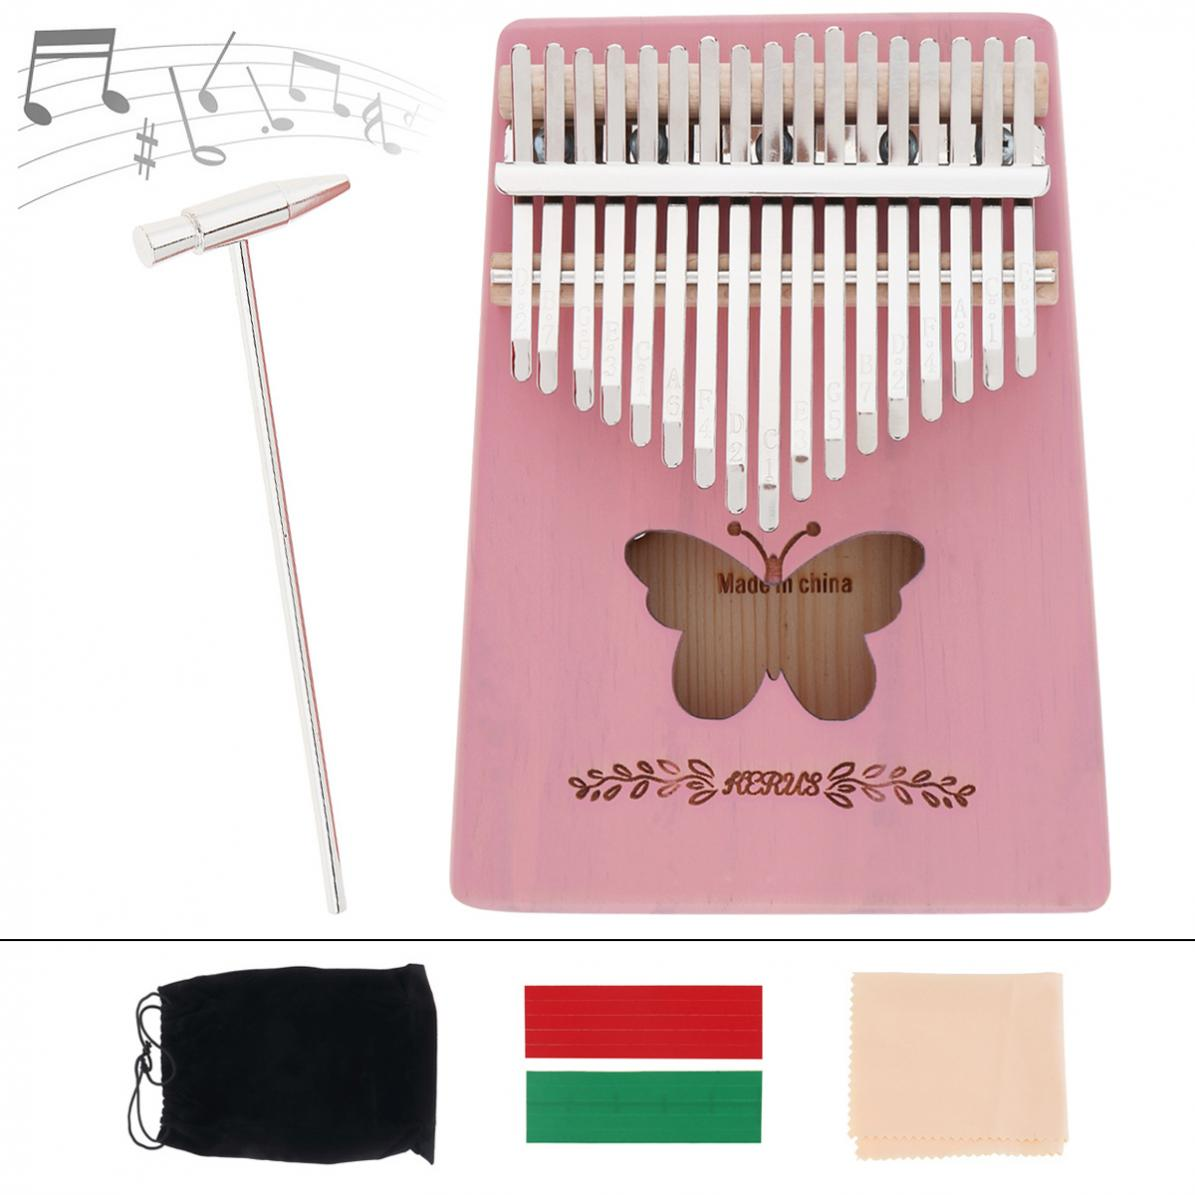 Thumb Piano 17 Key Kalimba Pink Solid Pine Wood Butterfly Sound Hole Thumb Piano Mbira Mini Keyboard Instrument enlarge